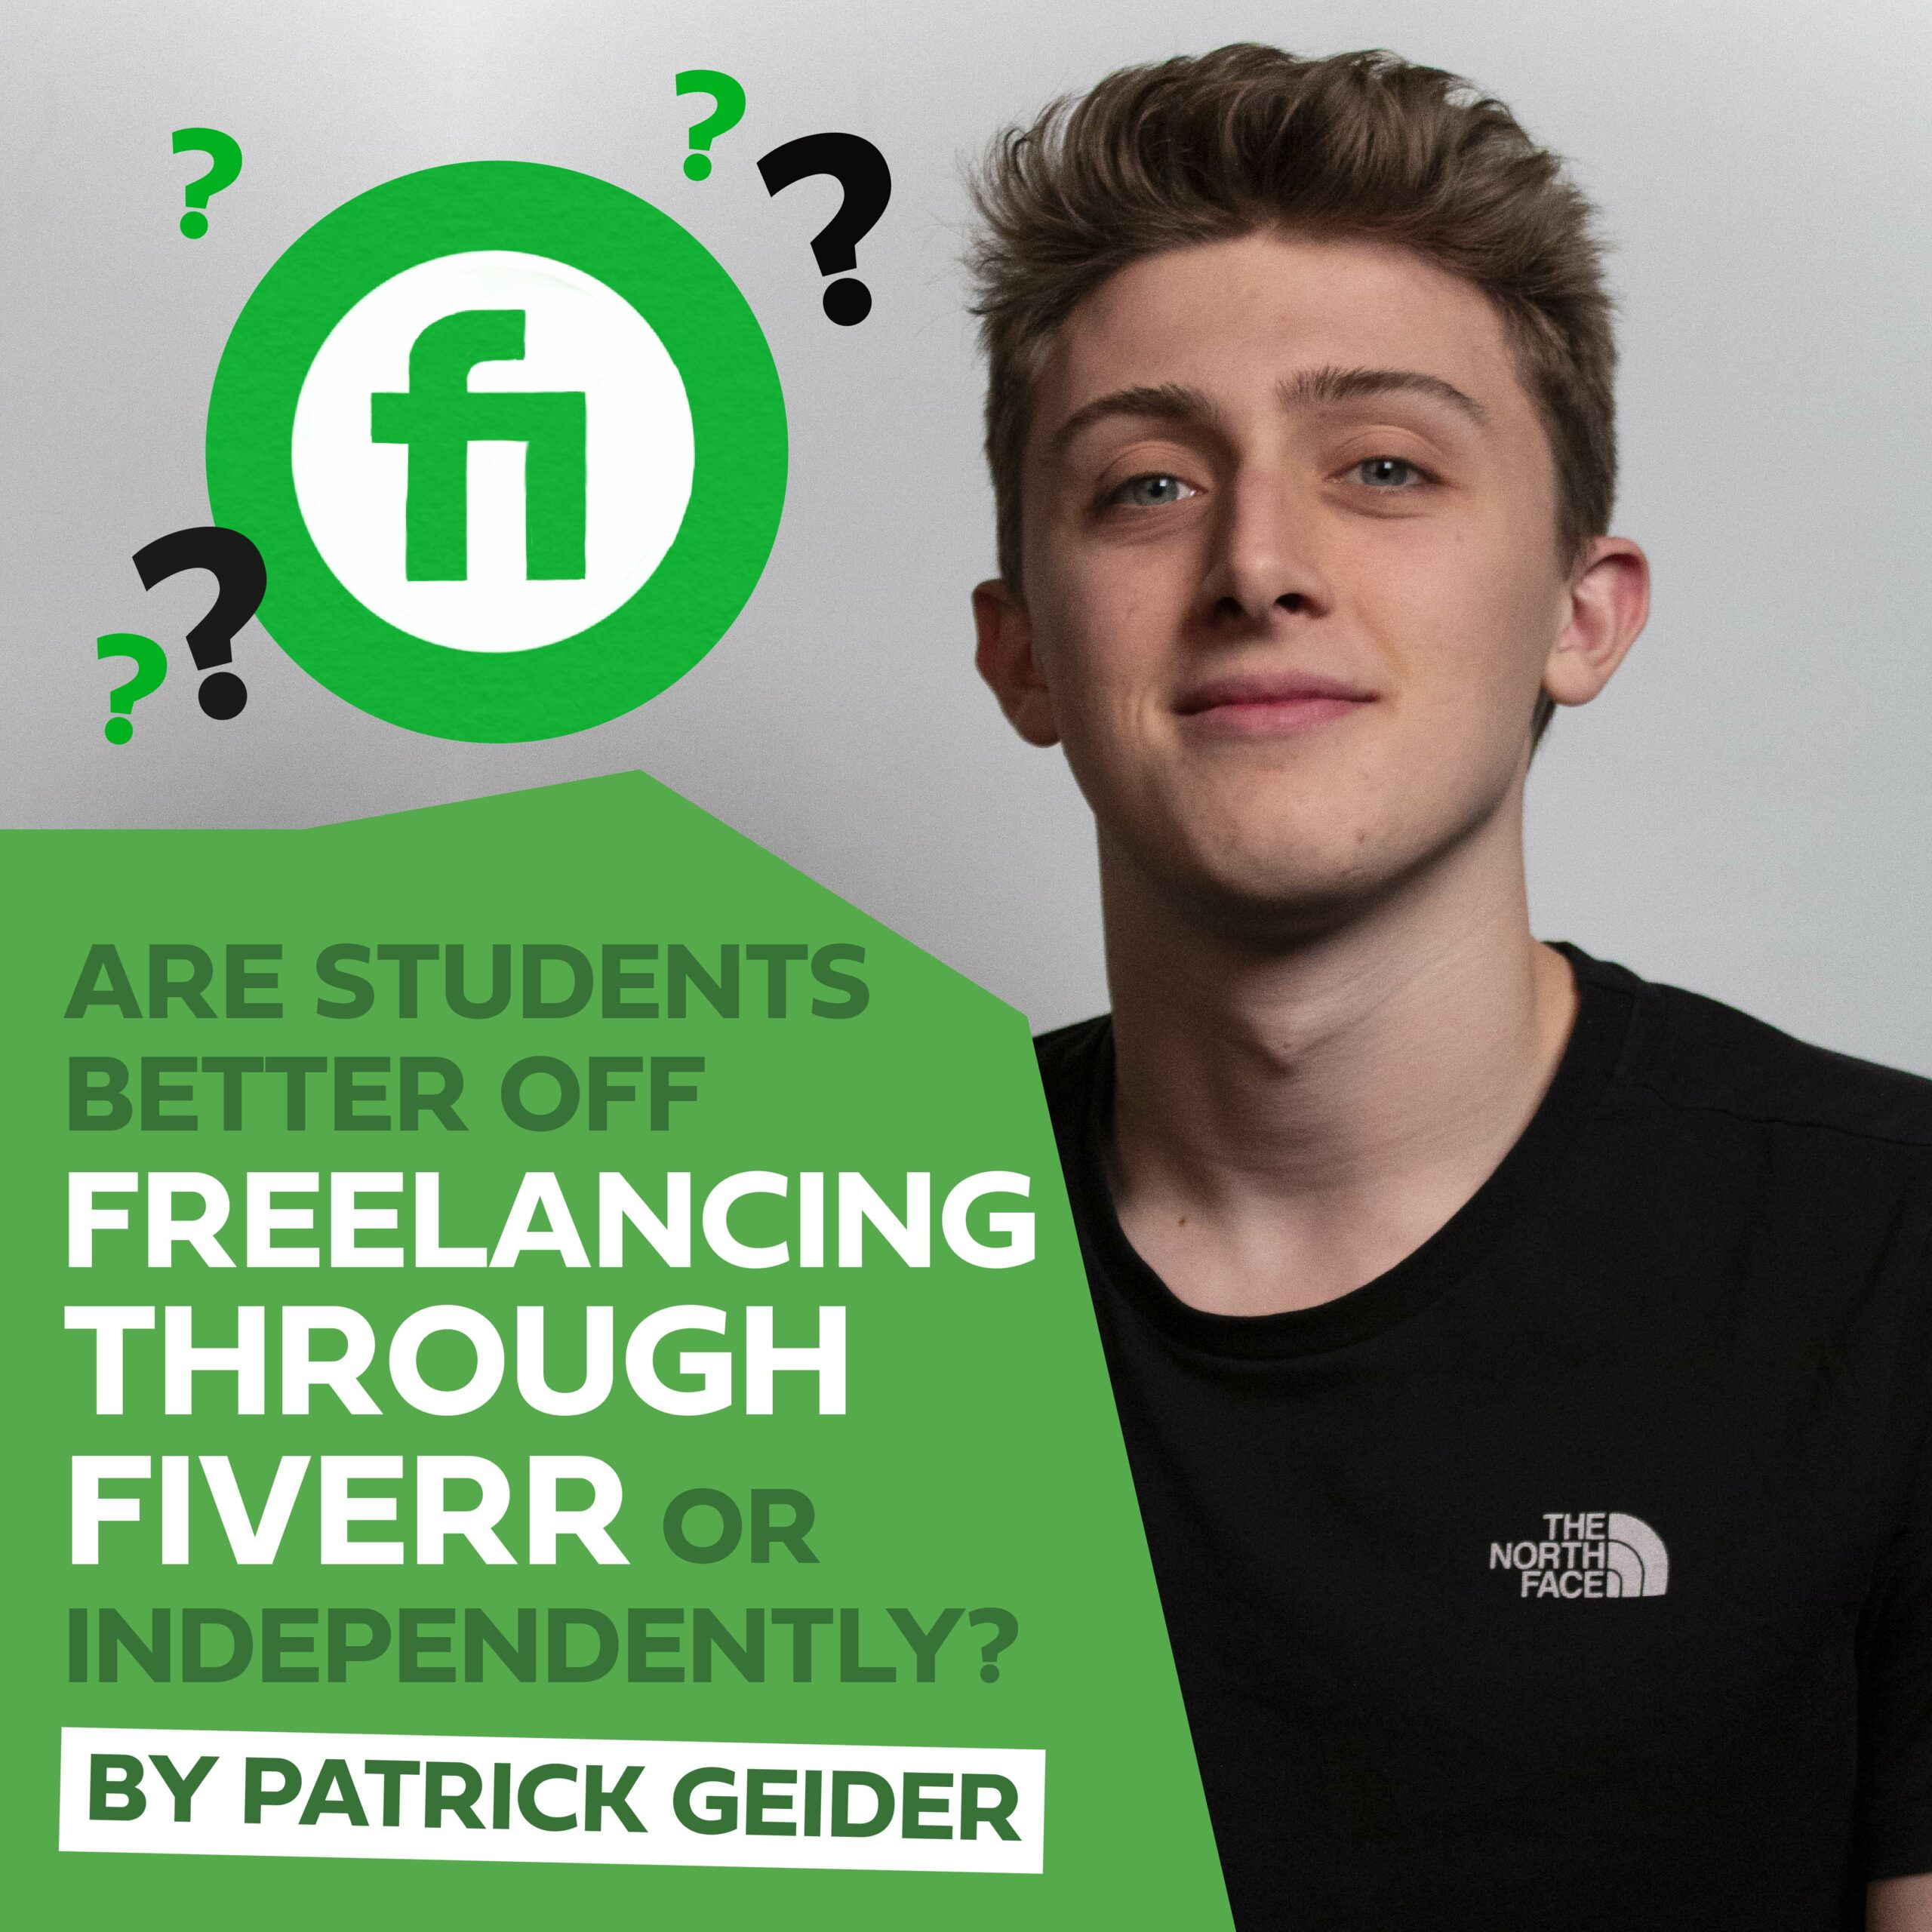 Are Students better off freelancing through Fiverr or independently?